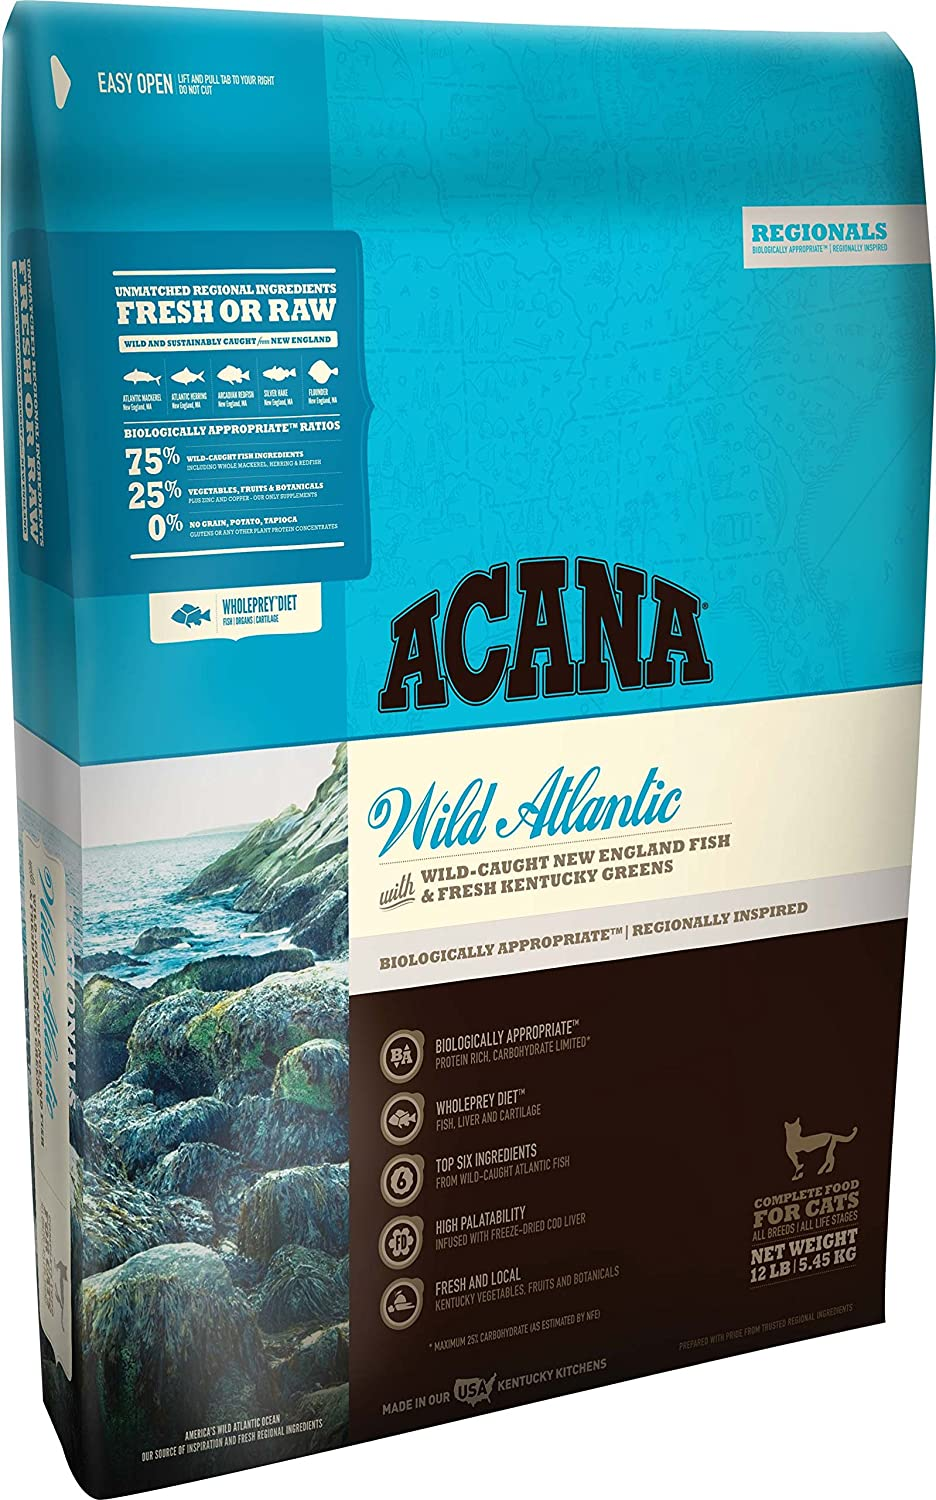 ACANA Regionals Wild Atlantic Cat Food Black Friday Deal 2019